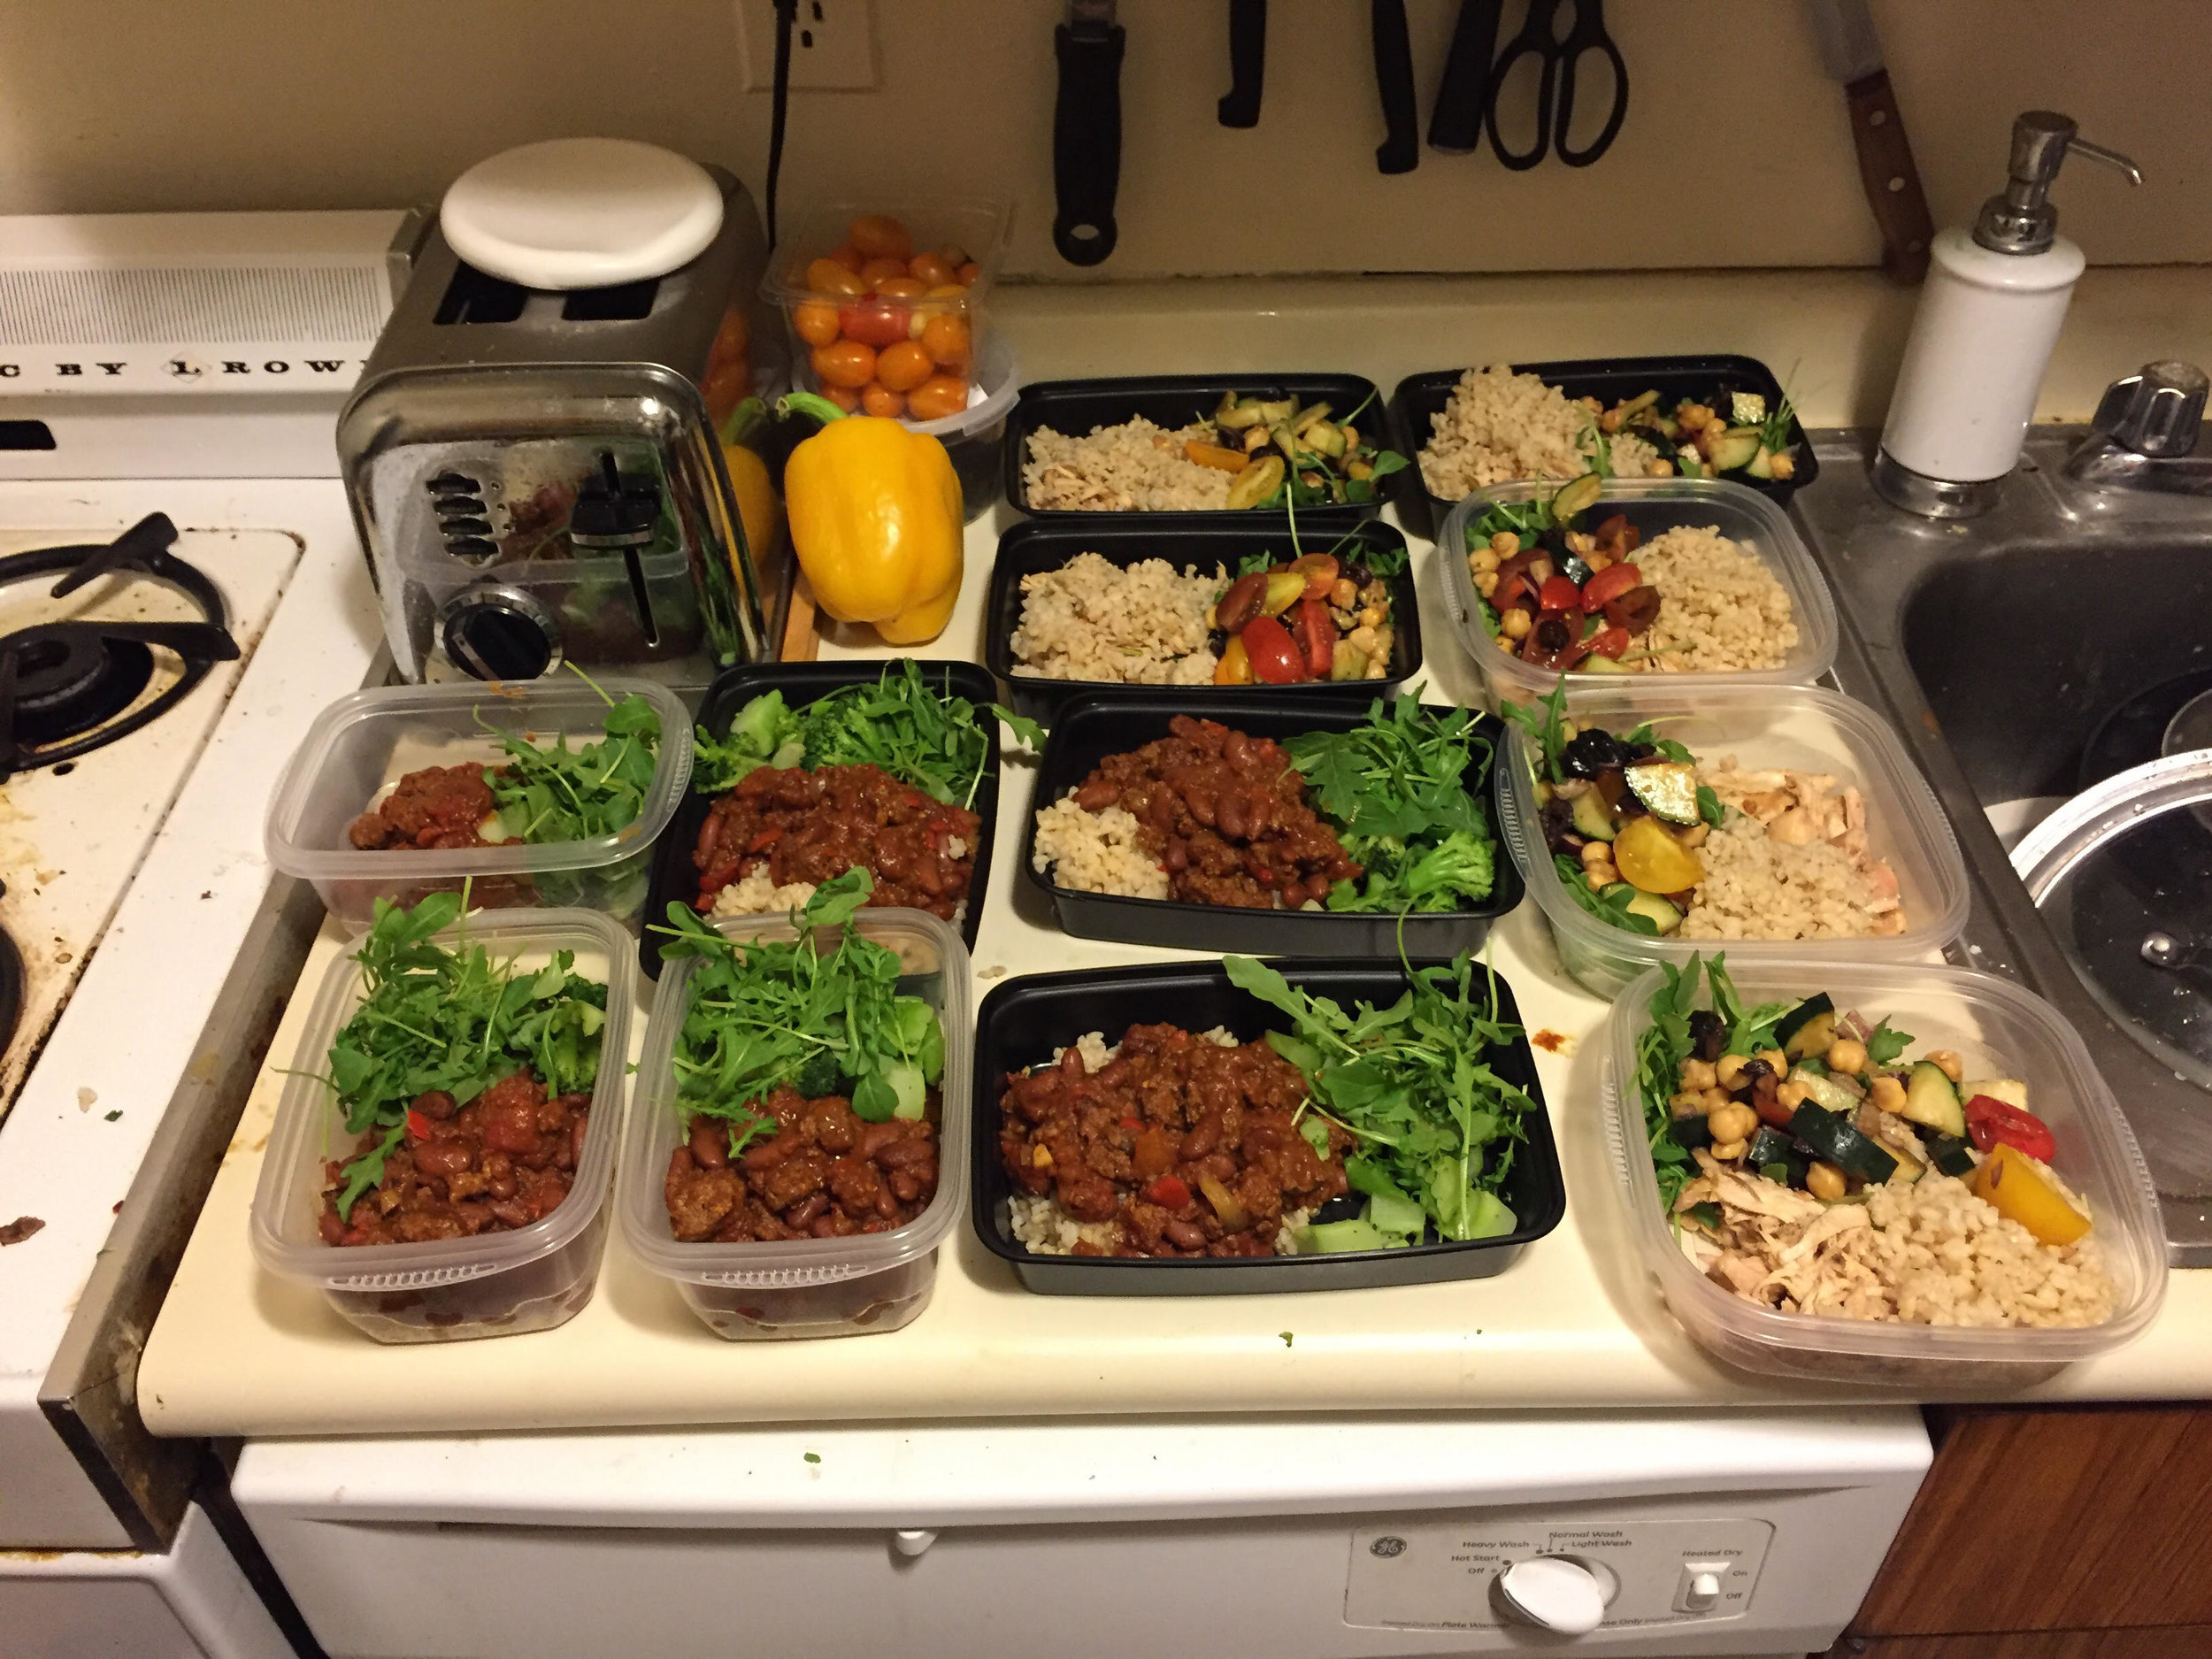 Portioning out meals (Used kitchen scale for the protein and eyeballed the grains/veggies)